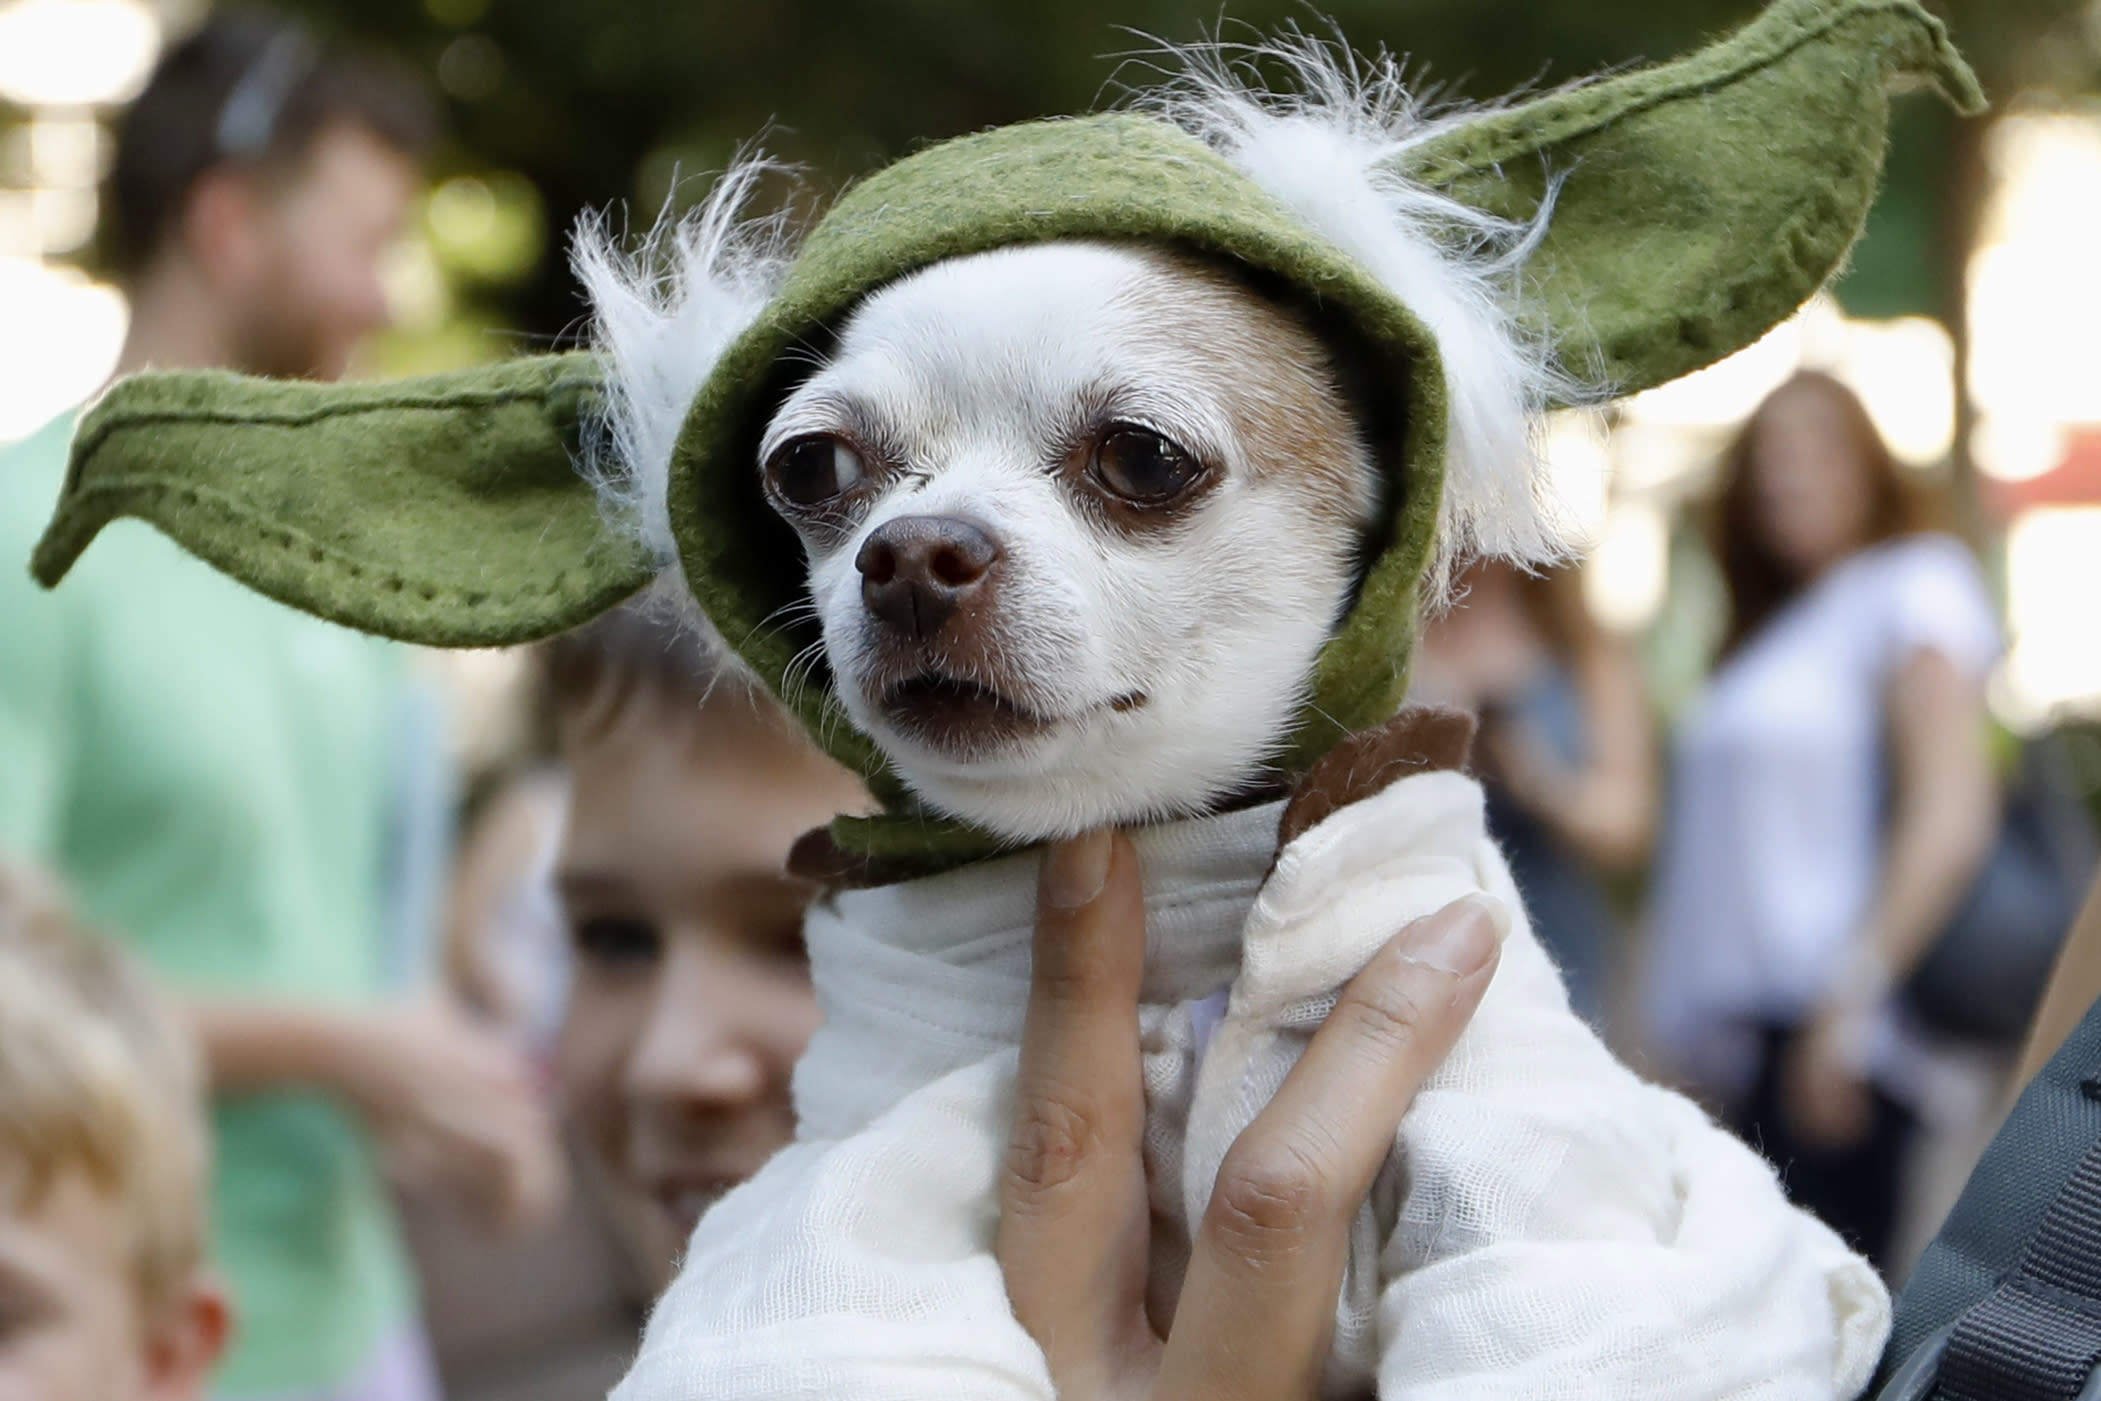 """A dog dressed as Yoda from """"Star Wars"""" won the cosplay costume contest award at Doggy Con in Woodruff Park, Saturday, Aug. 17, 2019, in Atlanta. Cosplay is the practice of dressing up like a fictional character. (AP Photo/Andrea Smith)"""